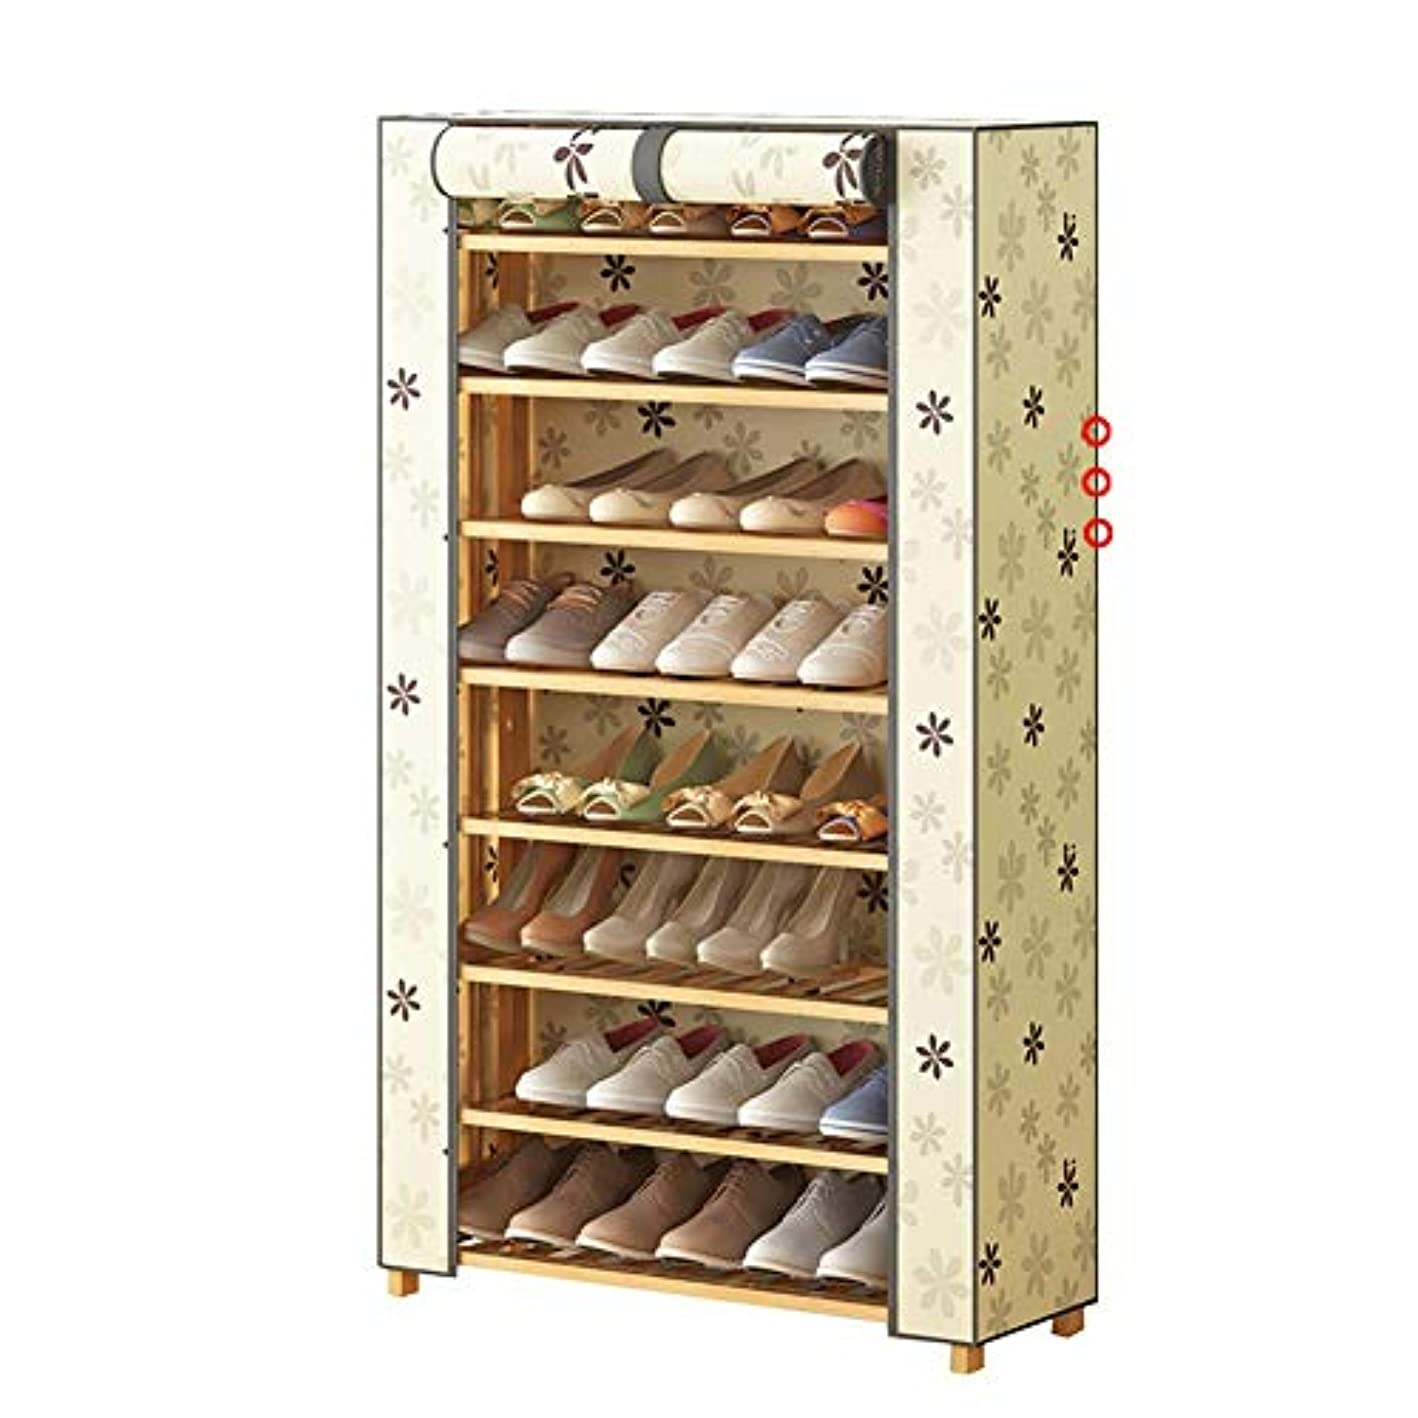 8-Tier Shoe Bamboo Rack with Oxford Cover, Shoe Storage Cabinet Organizer - Space Saving